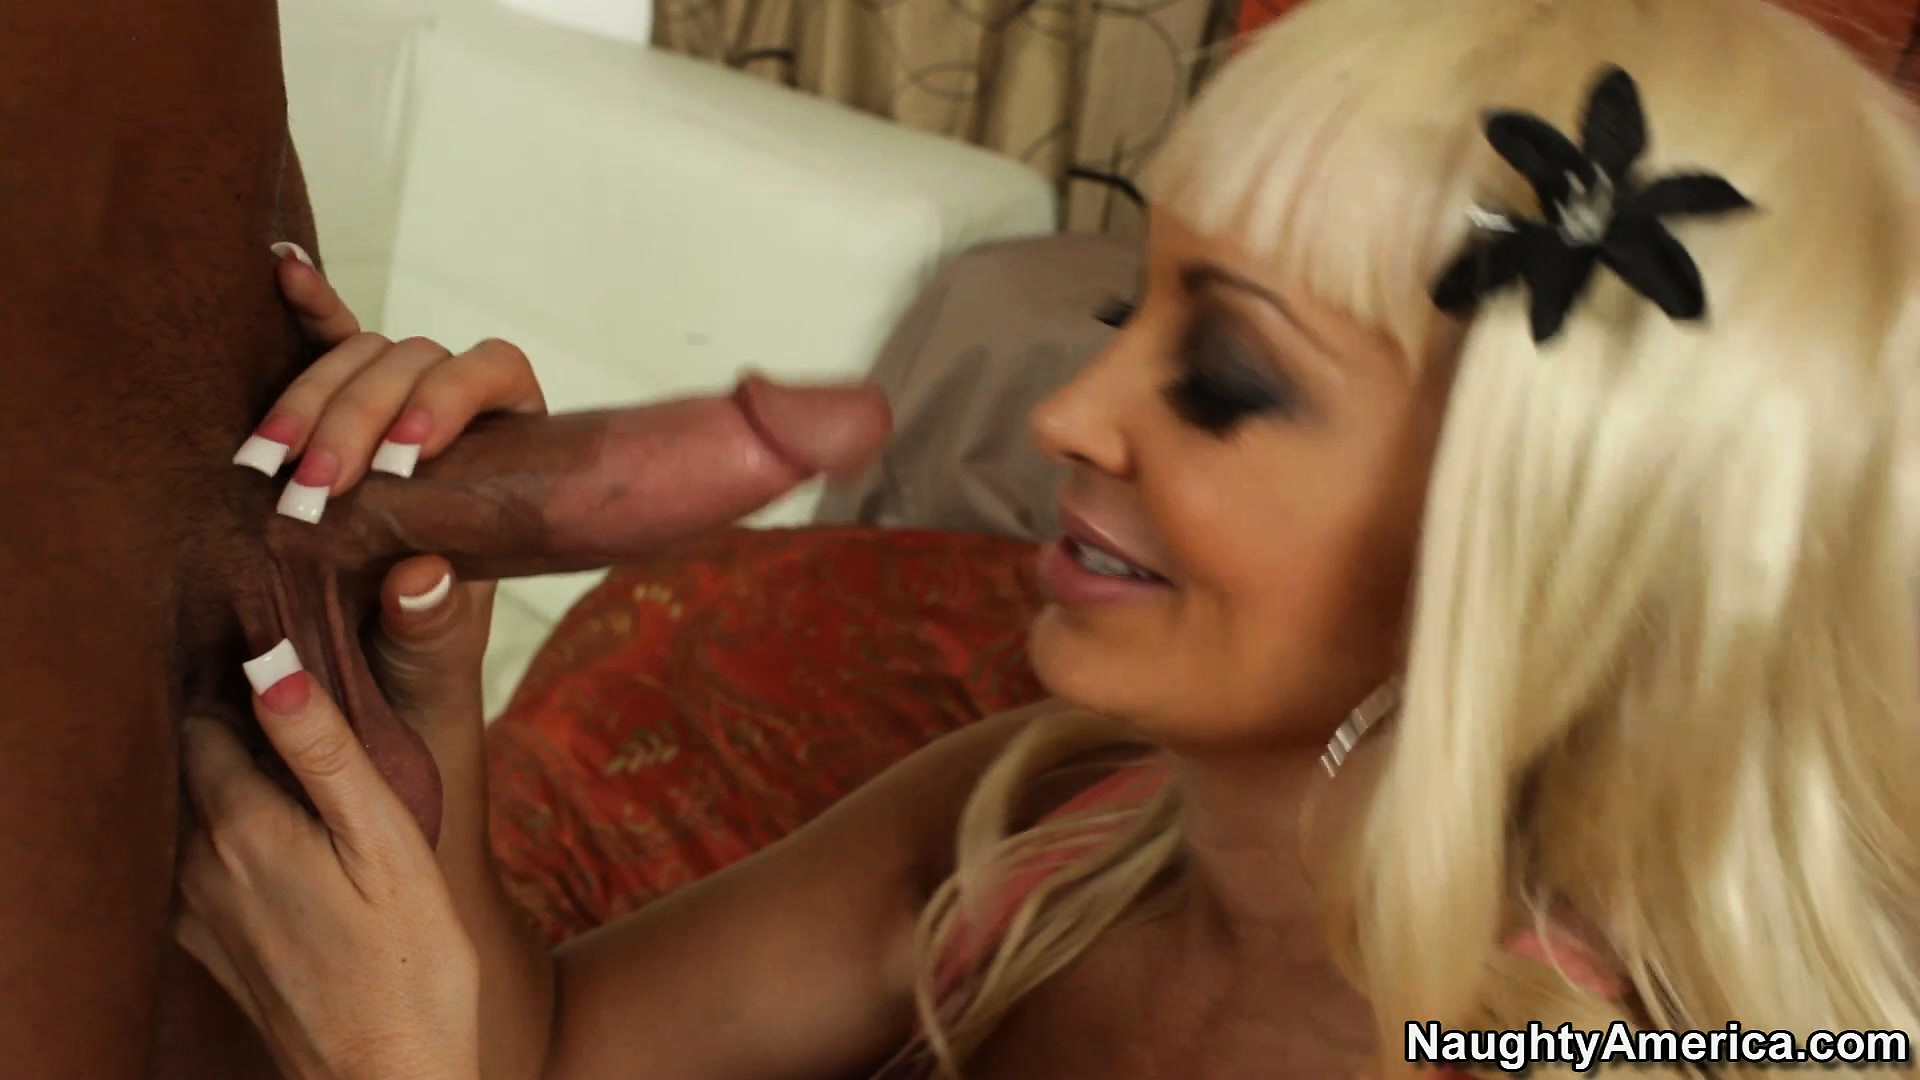 Porn Tube of Big Tit Blonde Brittany O 'neil Goes Down On His Stiffy And Sucks